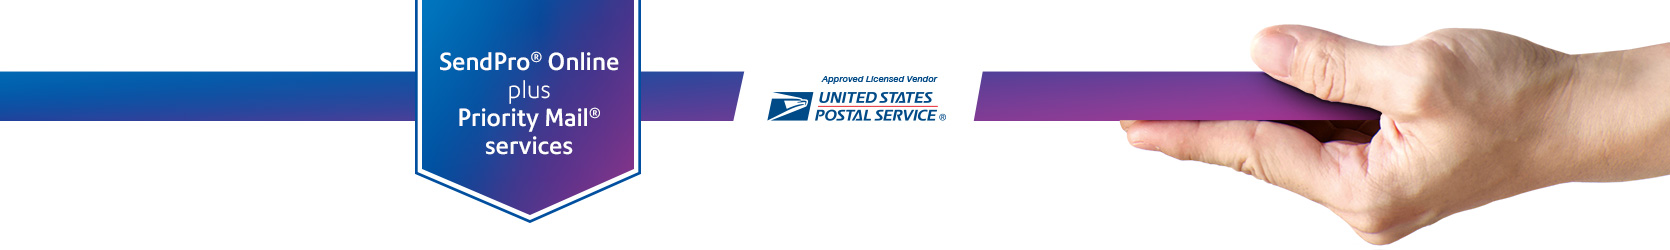 SendPro online plus Priority Mail